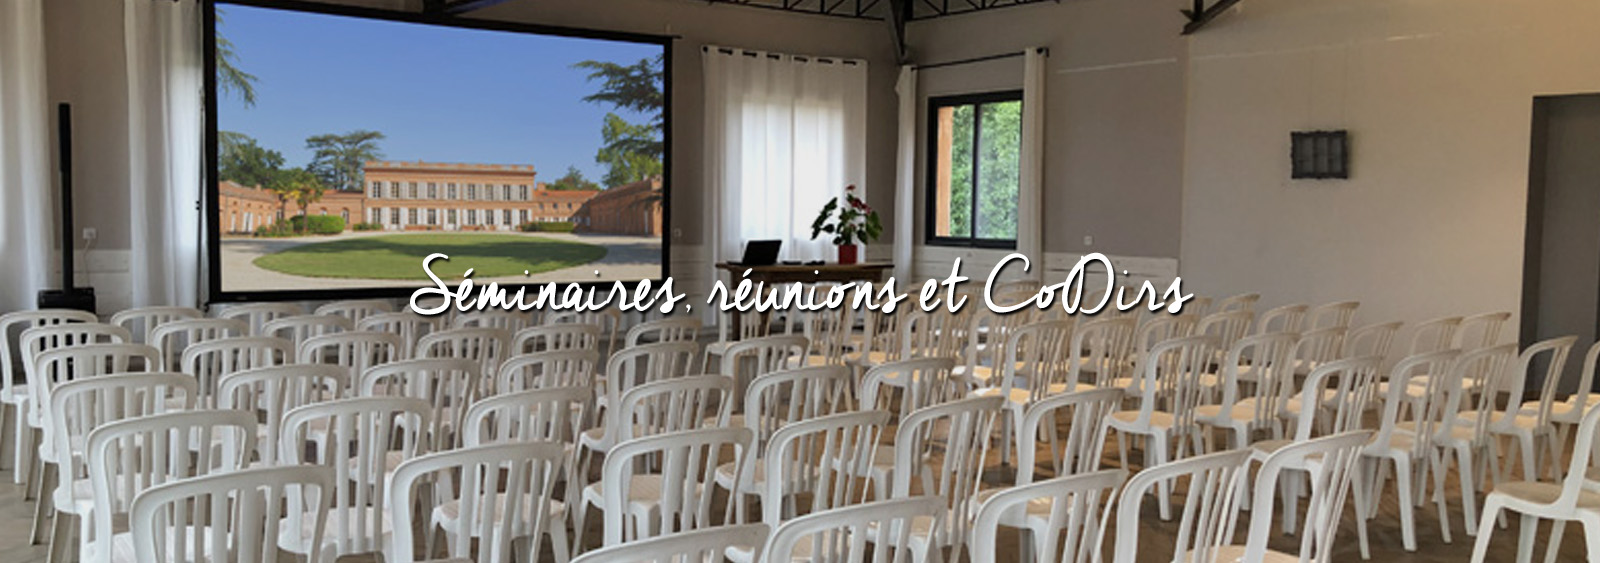 Chateau-lavalade-seminaires-reunions-codirs-slider